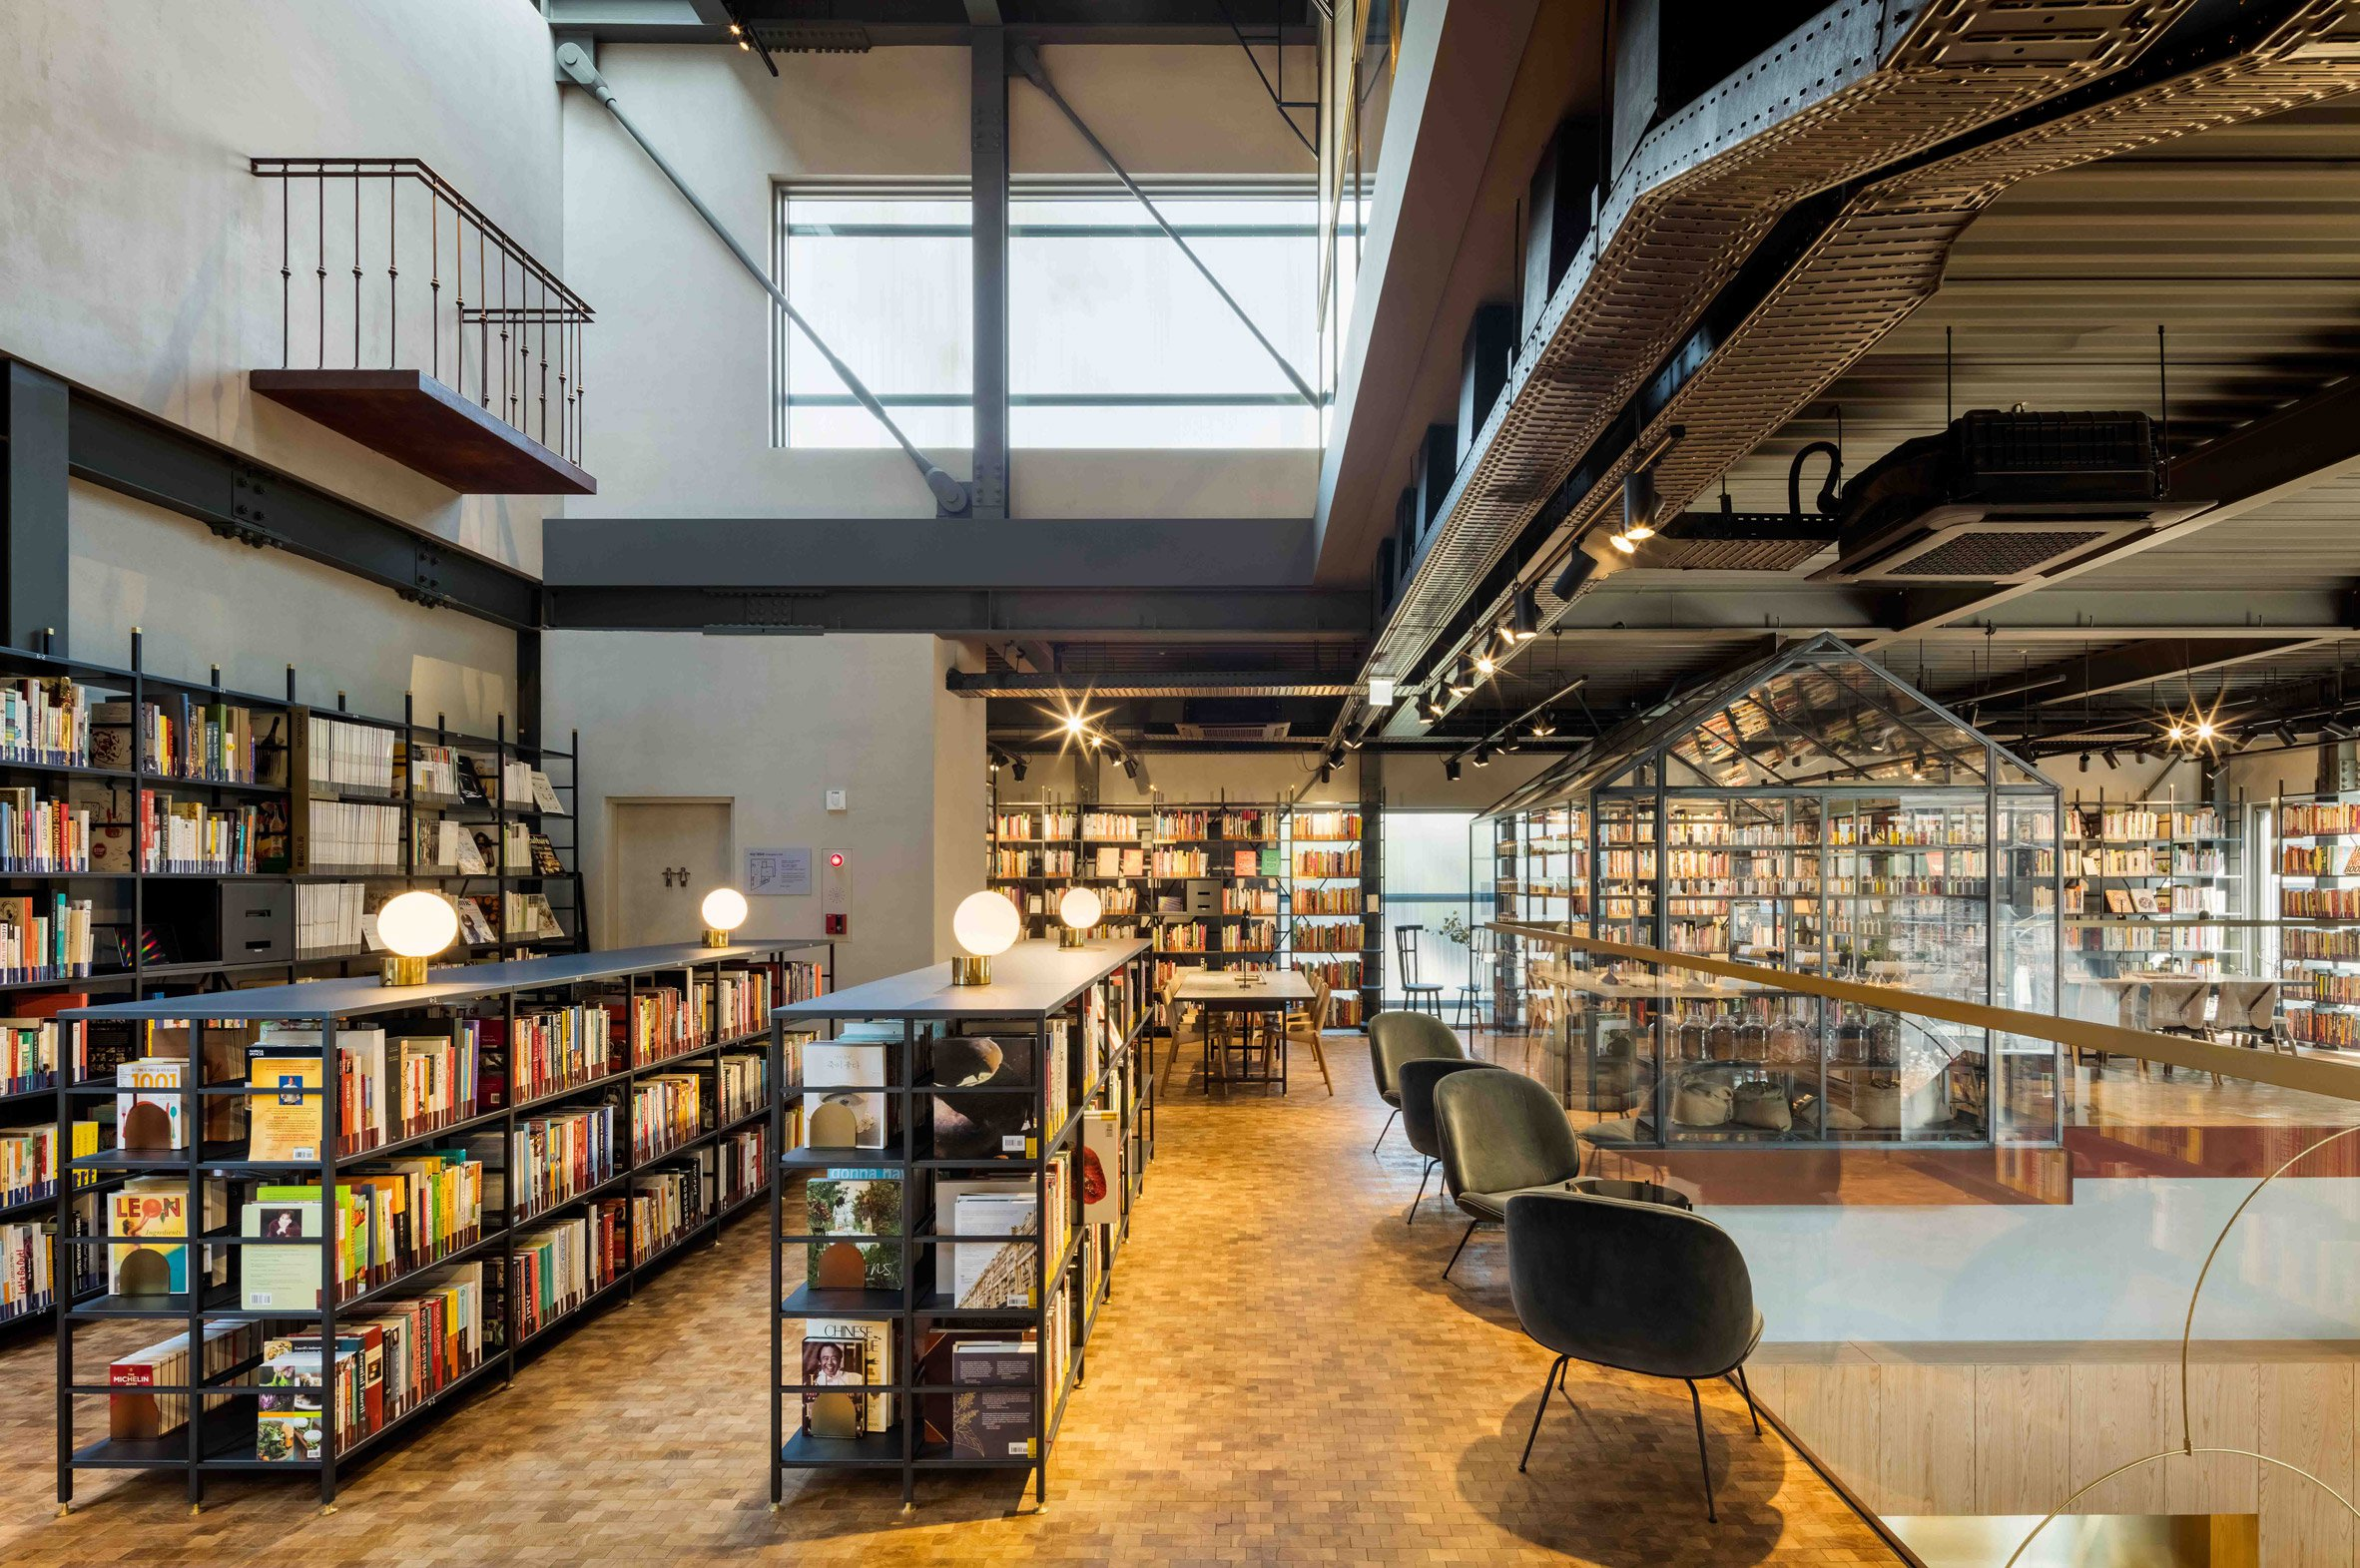 cooking-library-blacksheep-interiors_dezeen_2364_col_10.jpg